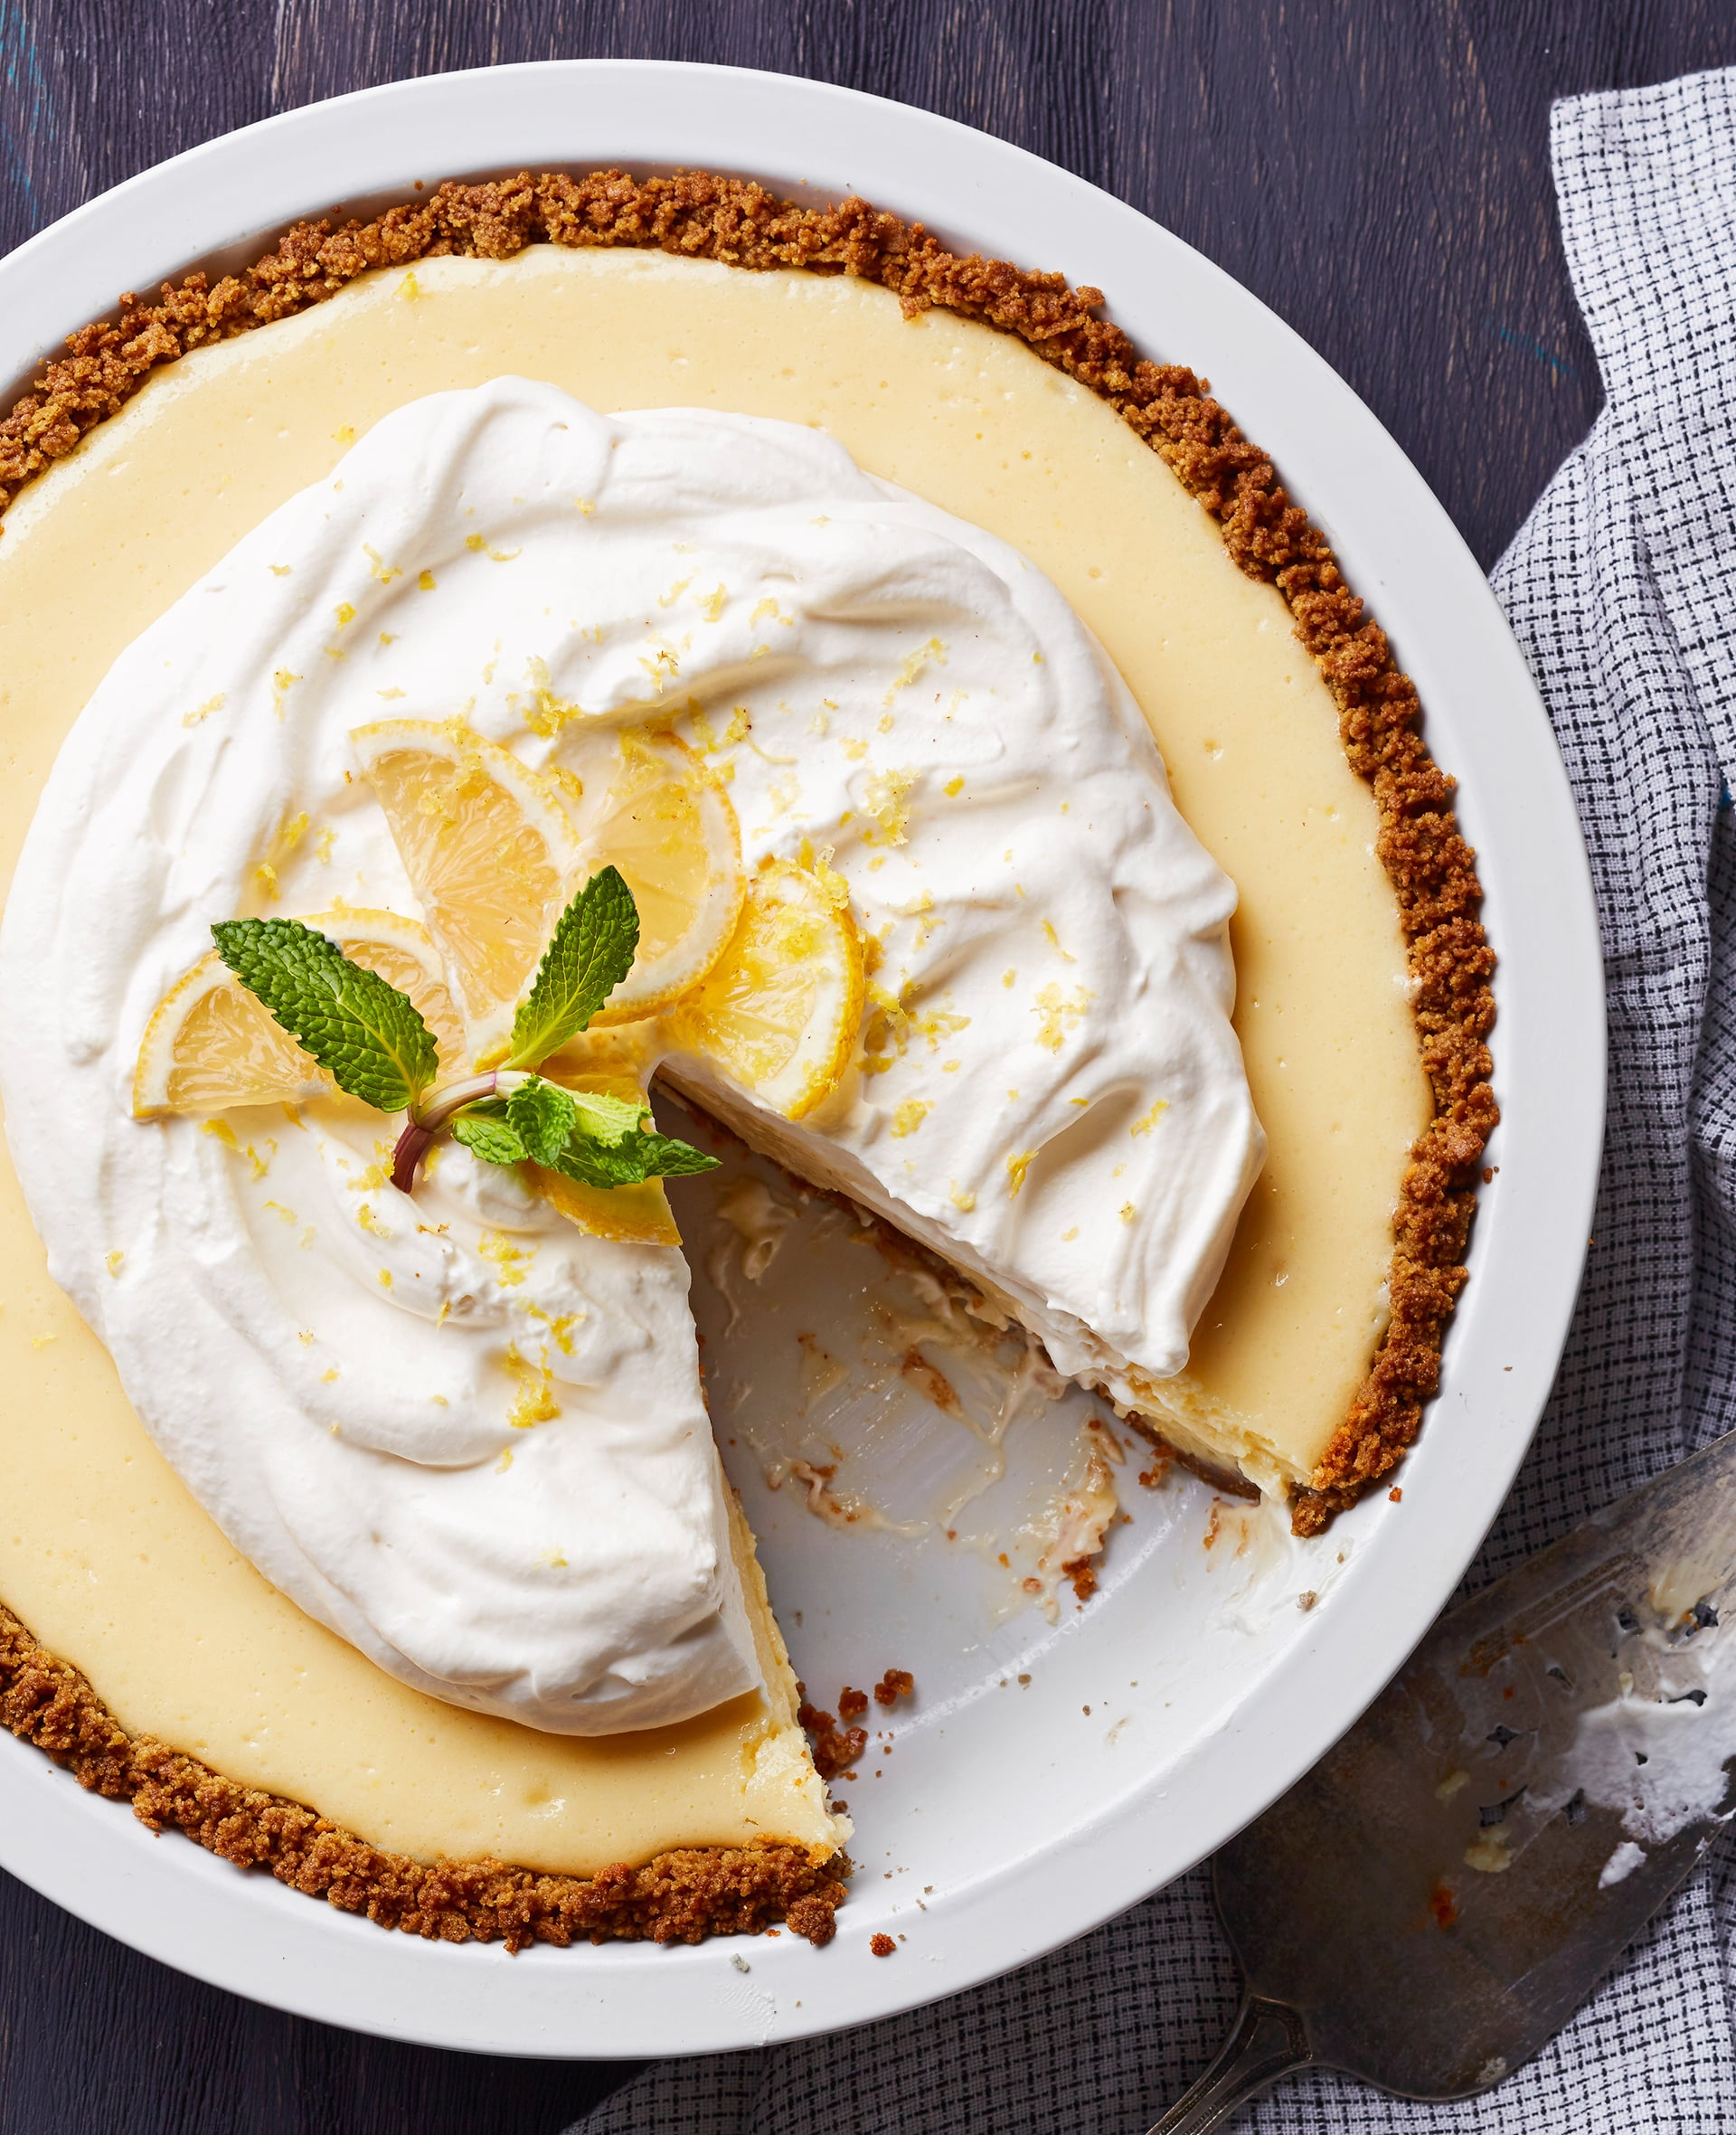 Joanna gaines lemon pie recipe popsugar food joanna gainess lemon pie is one of her favorite desserts and she shared the famous recipe in the spring issue of the magnolia journal chip and joannas forumfinder Gallery